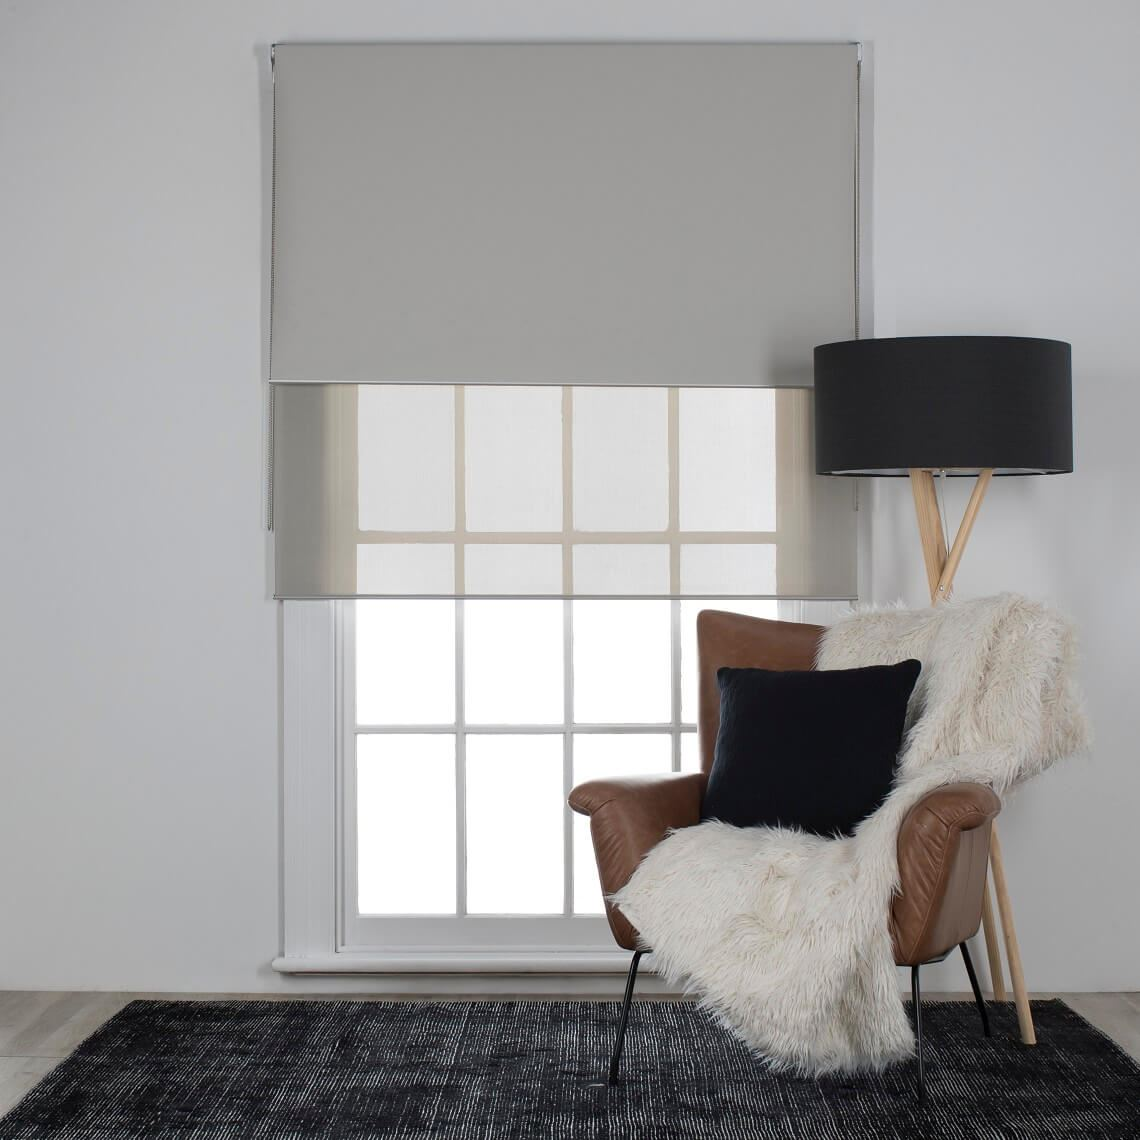 Aurora Set Of 2 Duo Roller Blind Size W 150cm x D 0cm x H 210cm in Almond 100% Polyester Freedom by Freedom, a Curtains for sale on Style Sourcebook